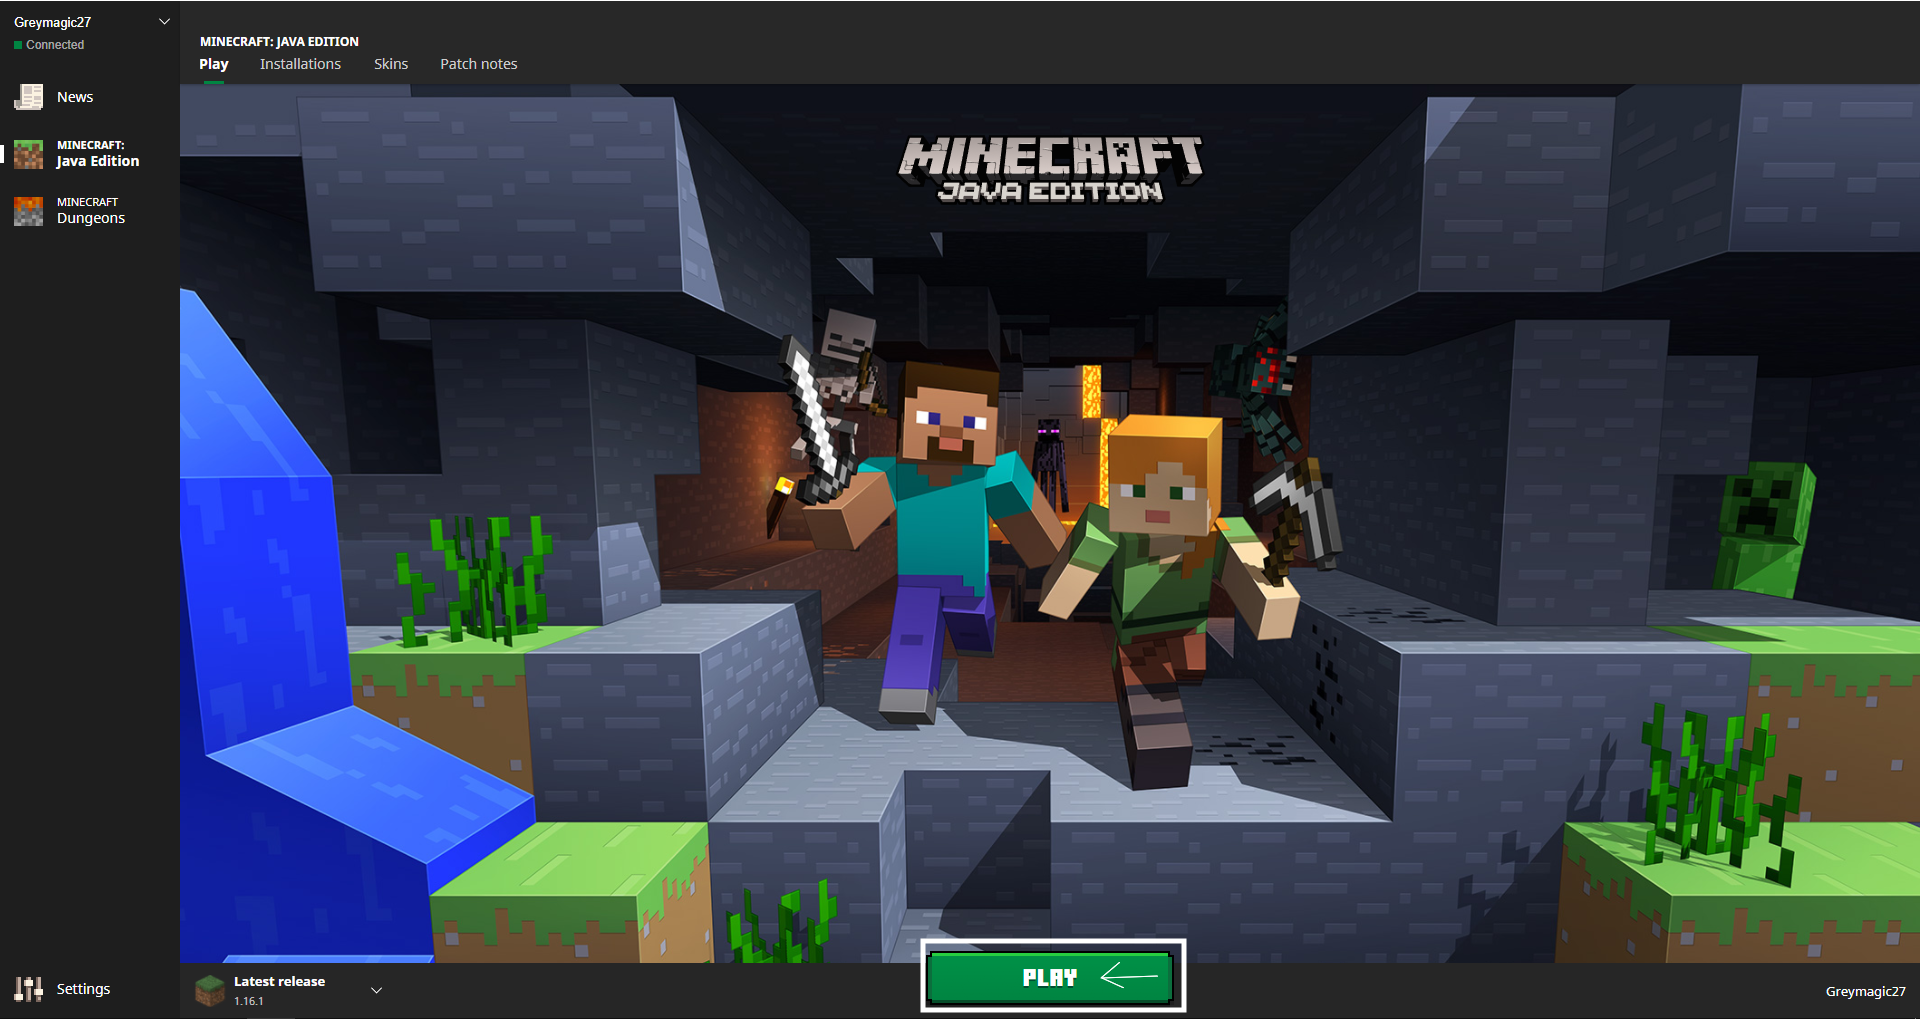 Minecraft launcher showing Play button